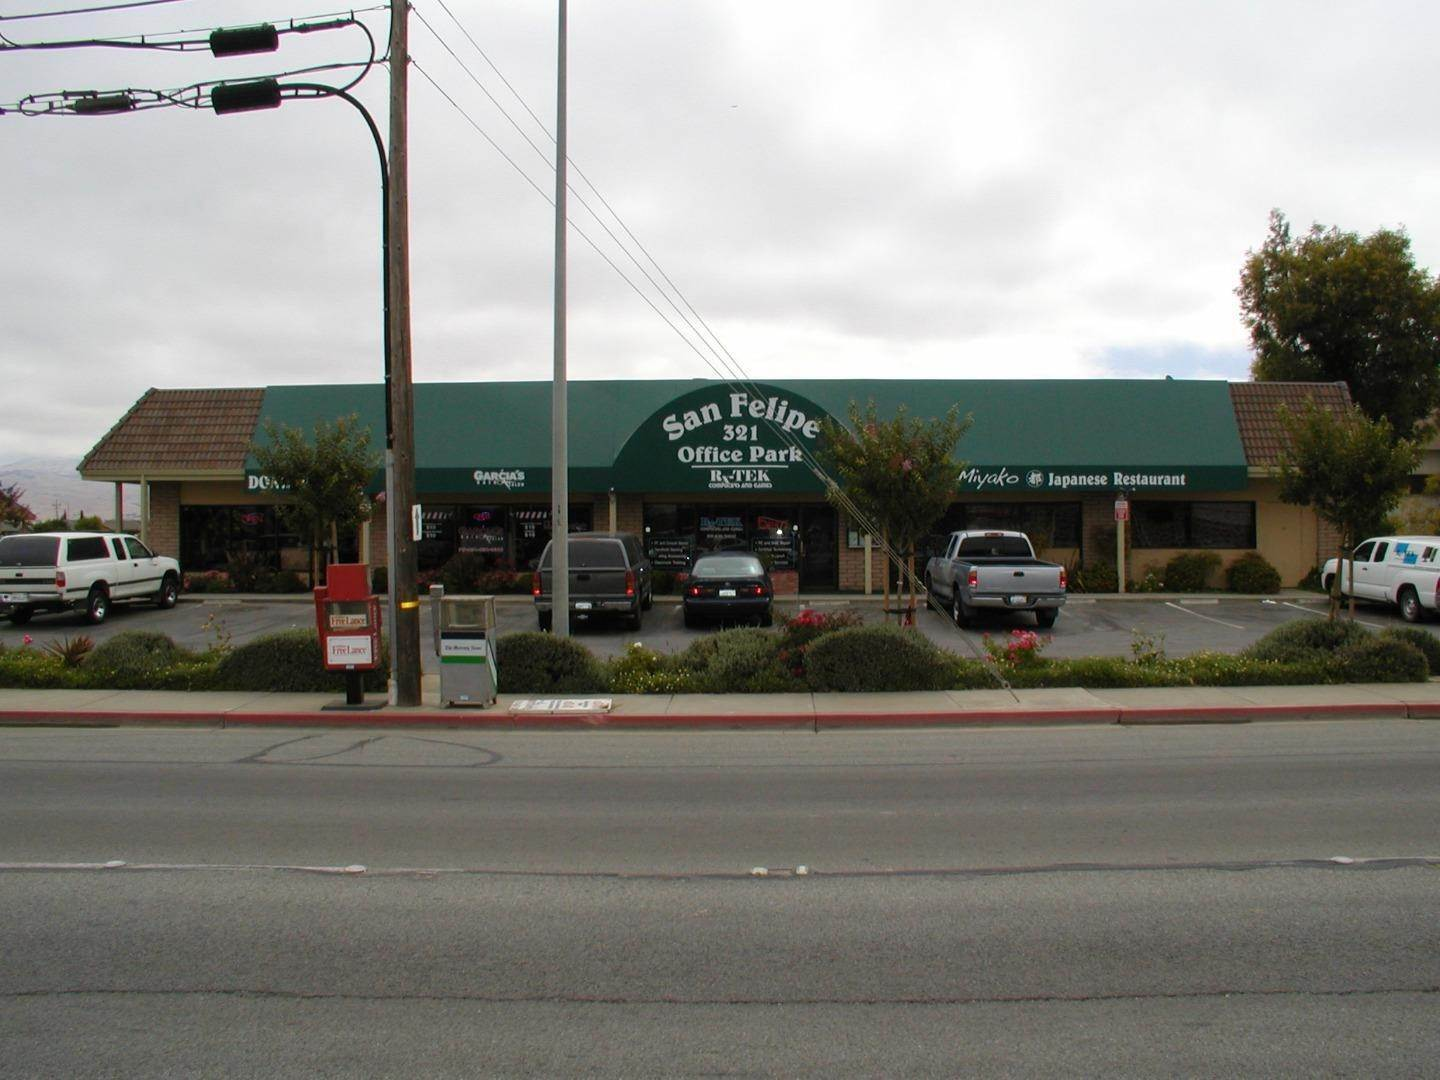 Comm / Ind Lease at 321 San Felipe Road Hollister, California 95023 United States